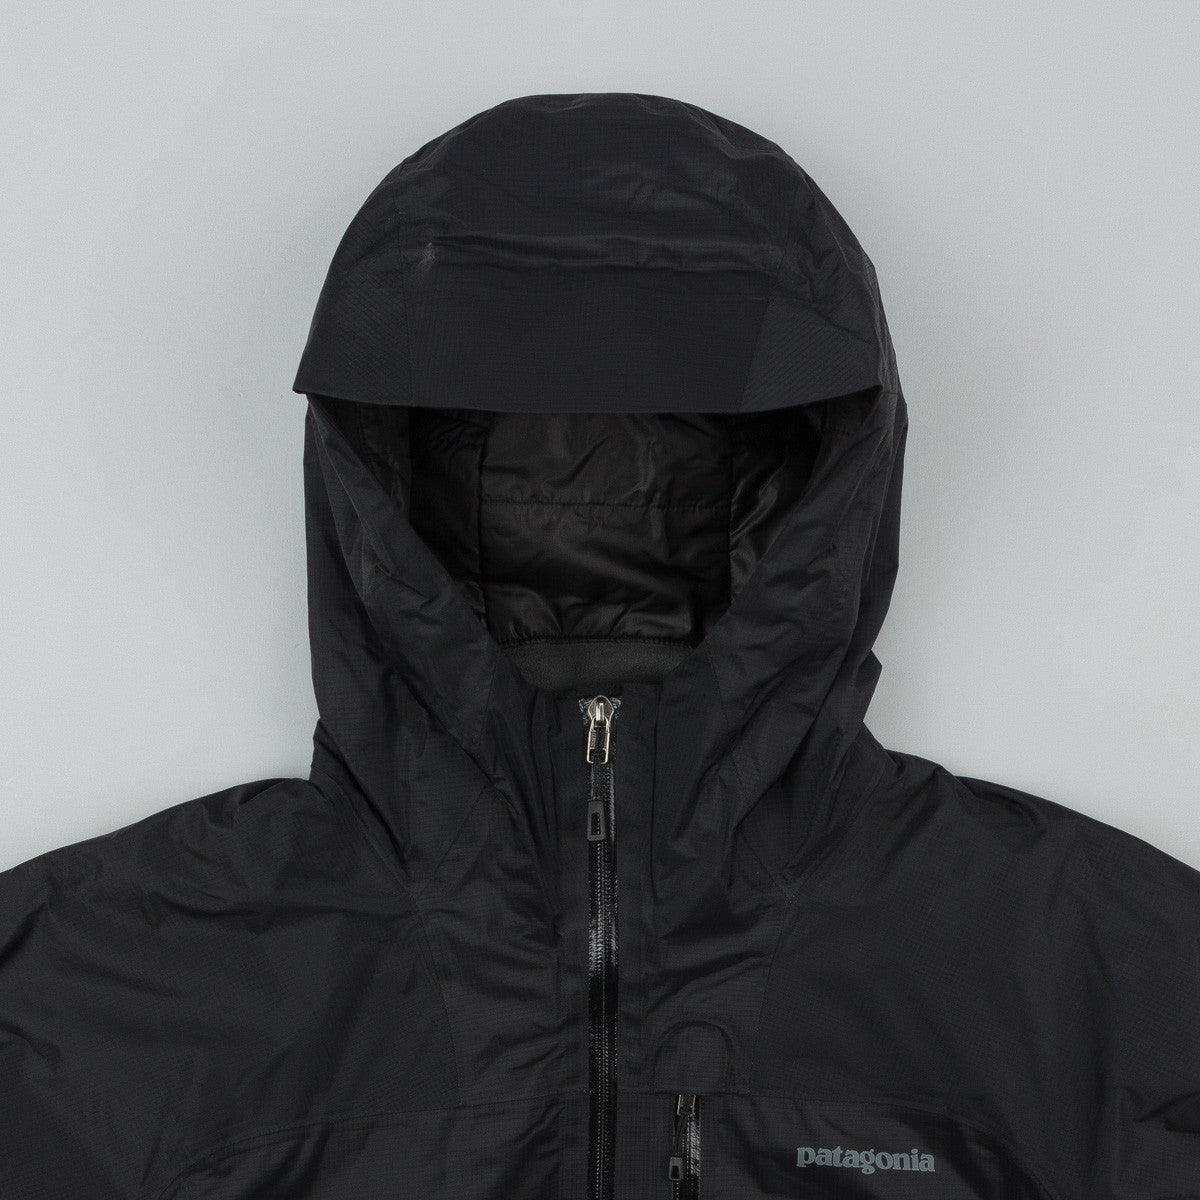 Patagonia Insulated Torrent Shell Jacket - Black